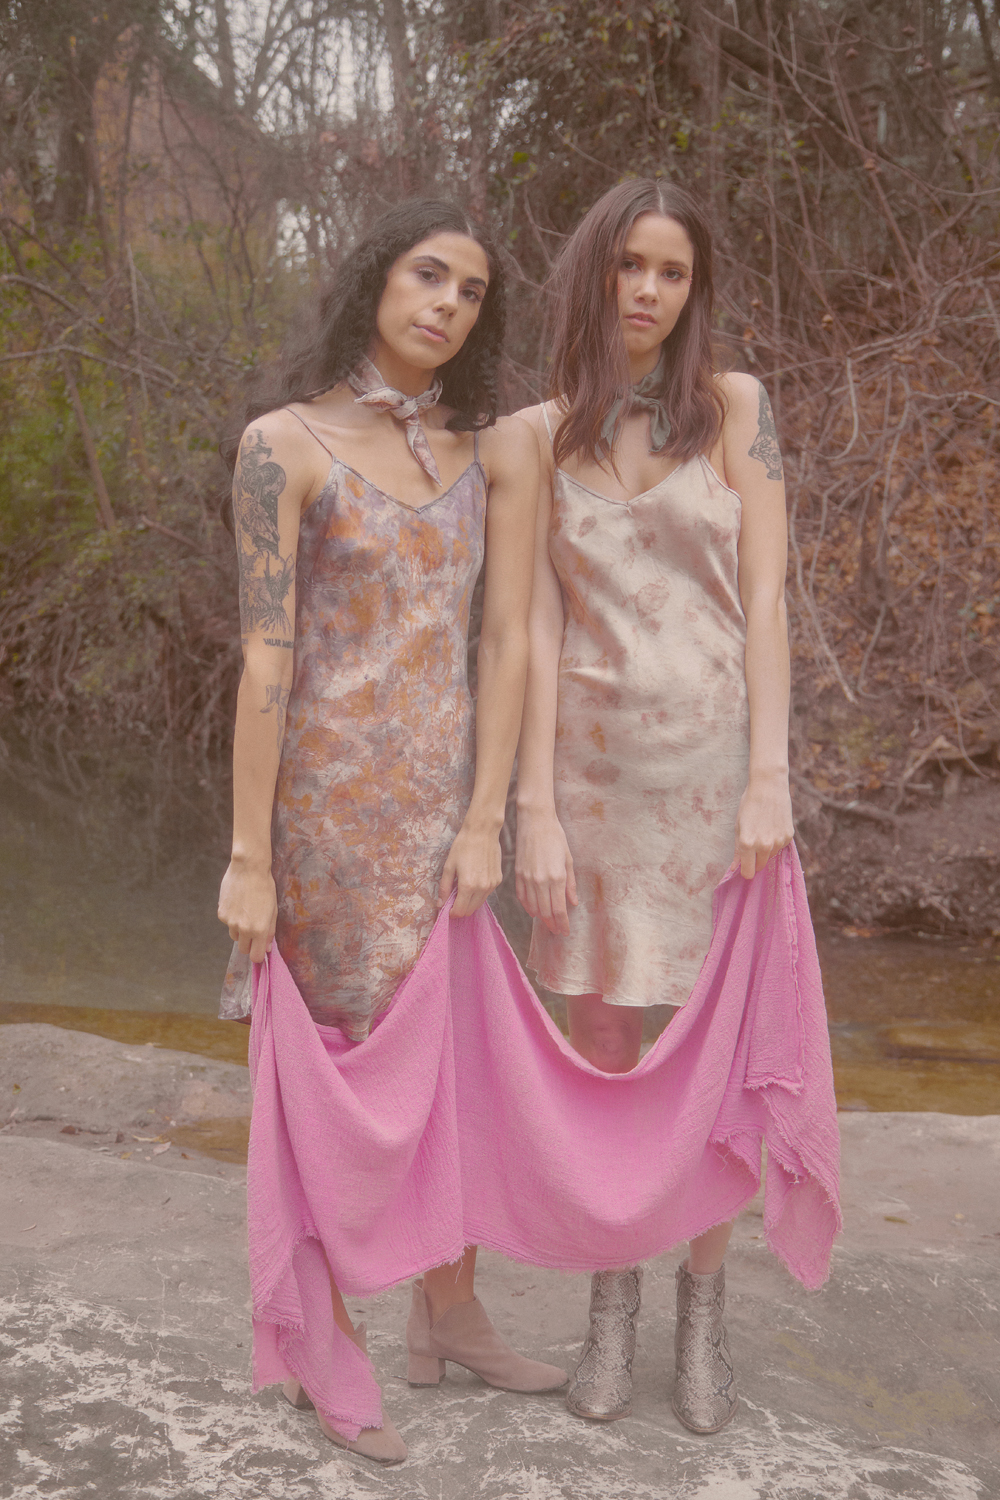 Marisa in Drift Slip and Ashtyn in Ethereal Dream Slip